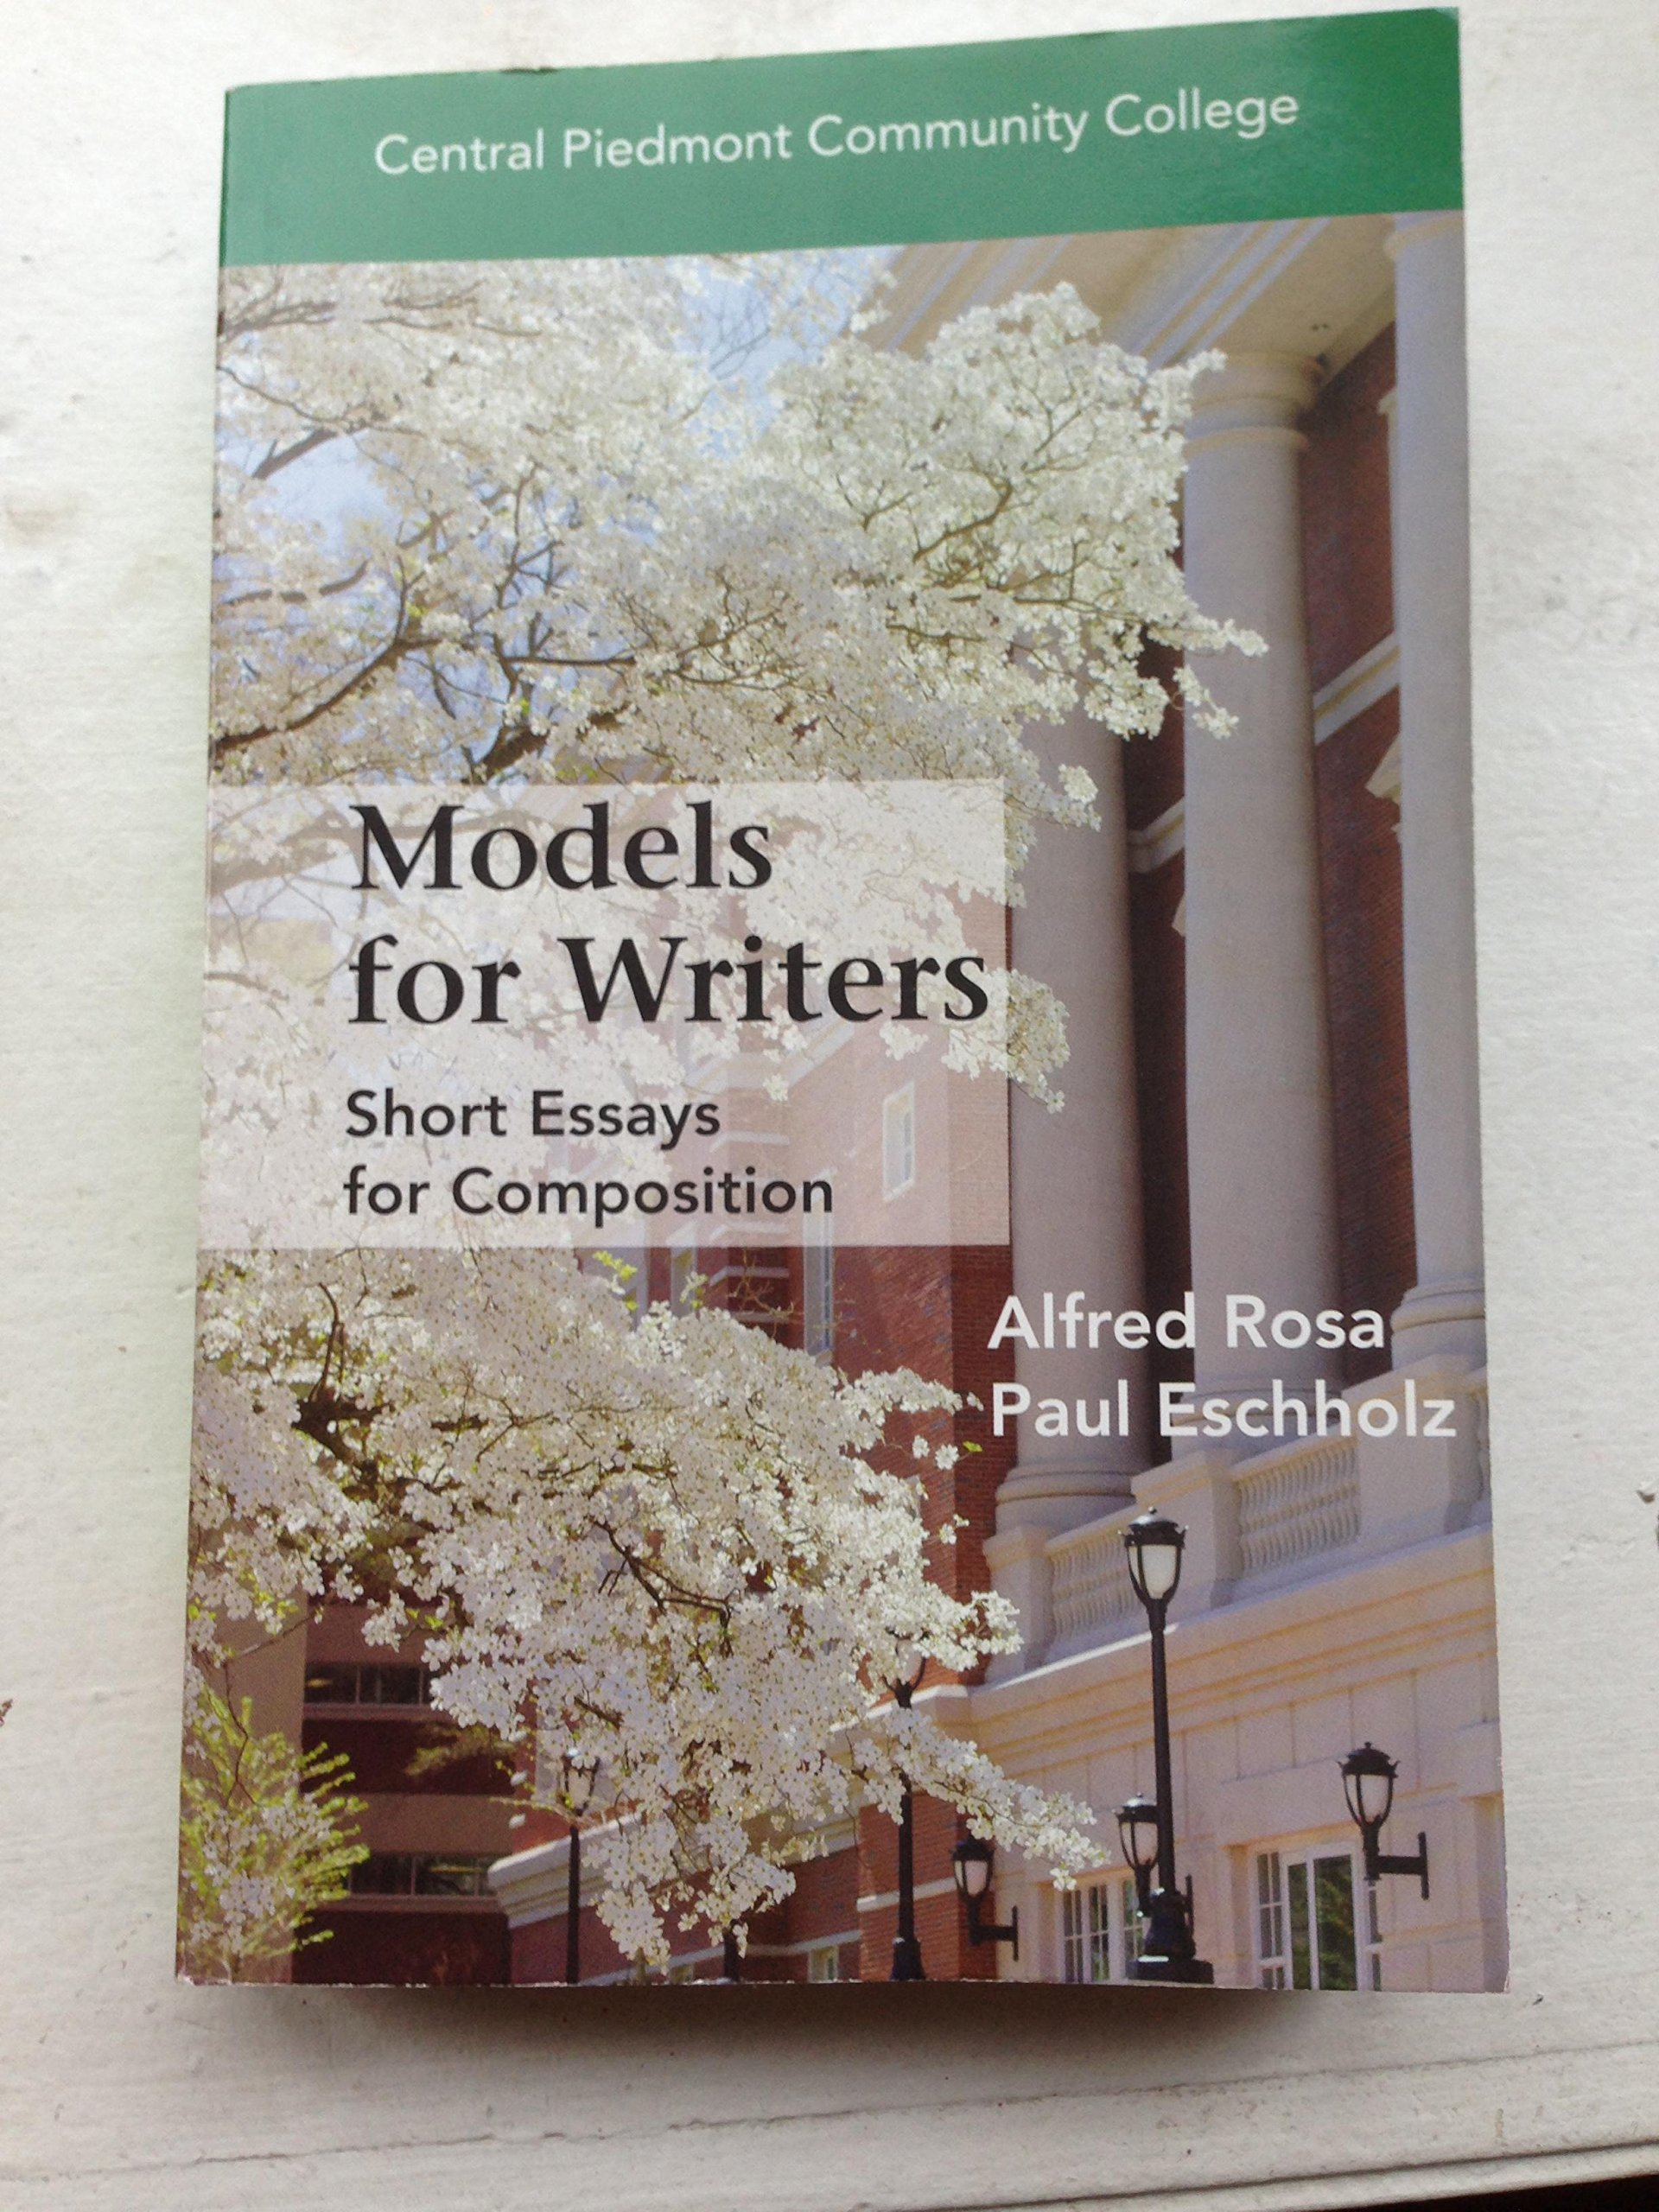 models for writers short essays for composition pdf to jpg